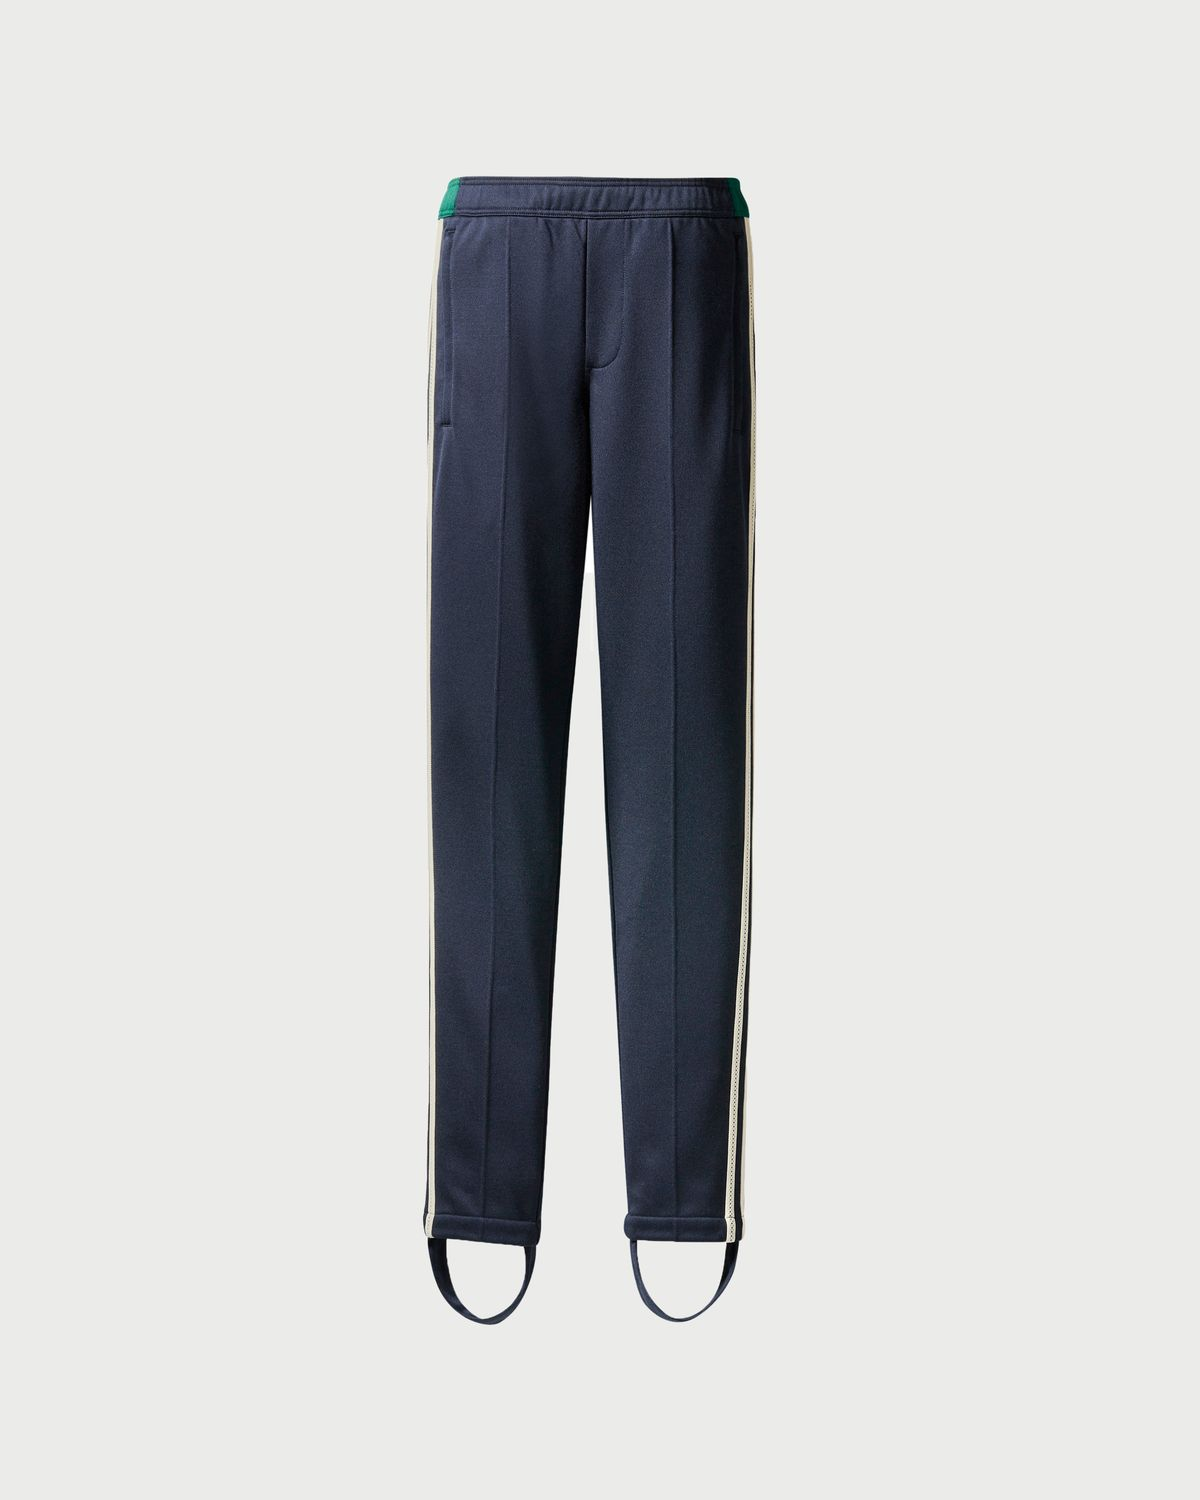 Adidas x Wales Bonner - Lovers Trousers Navy - Image 1